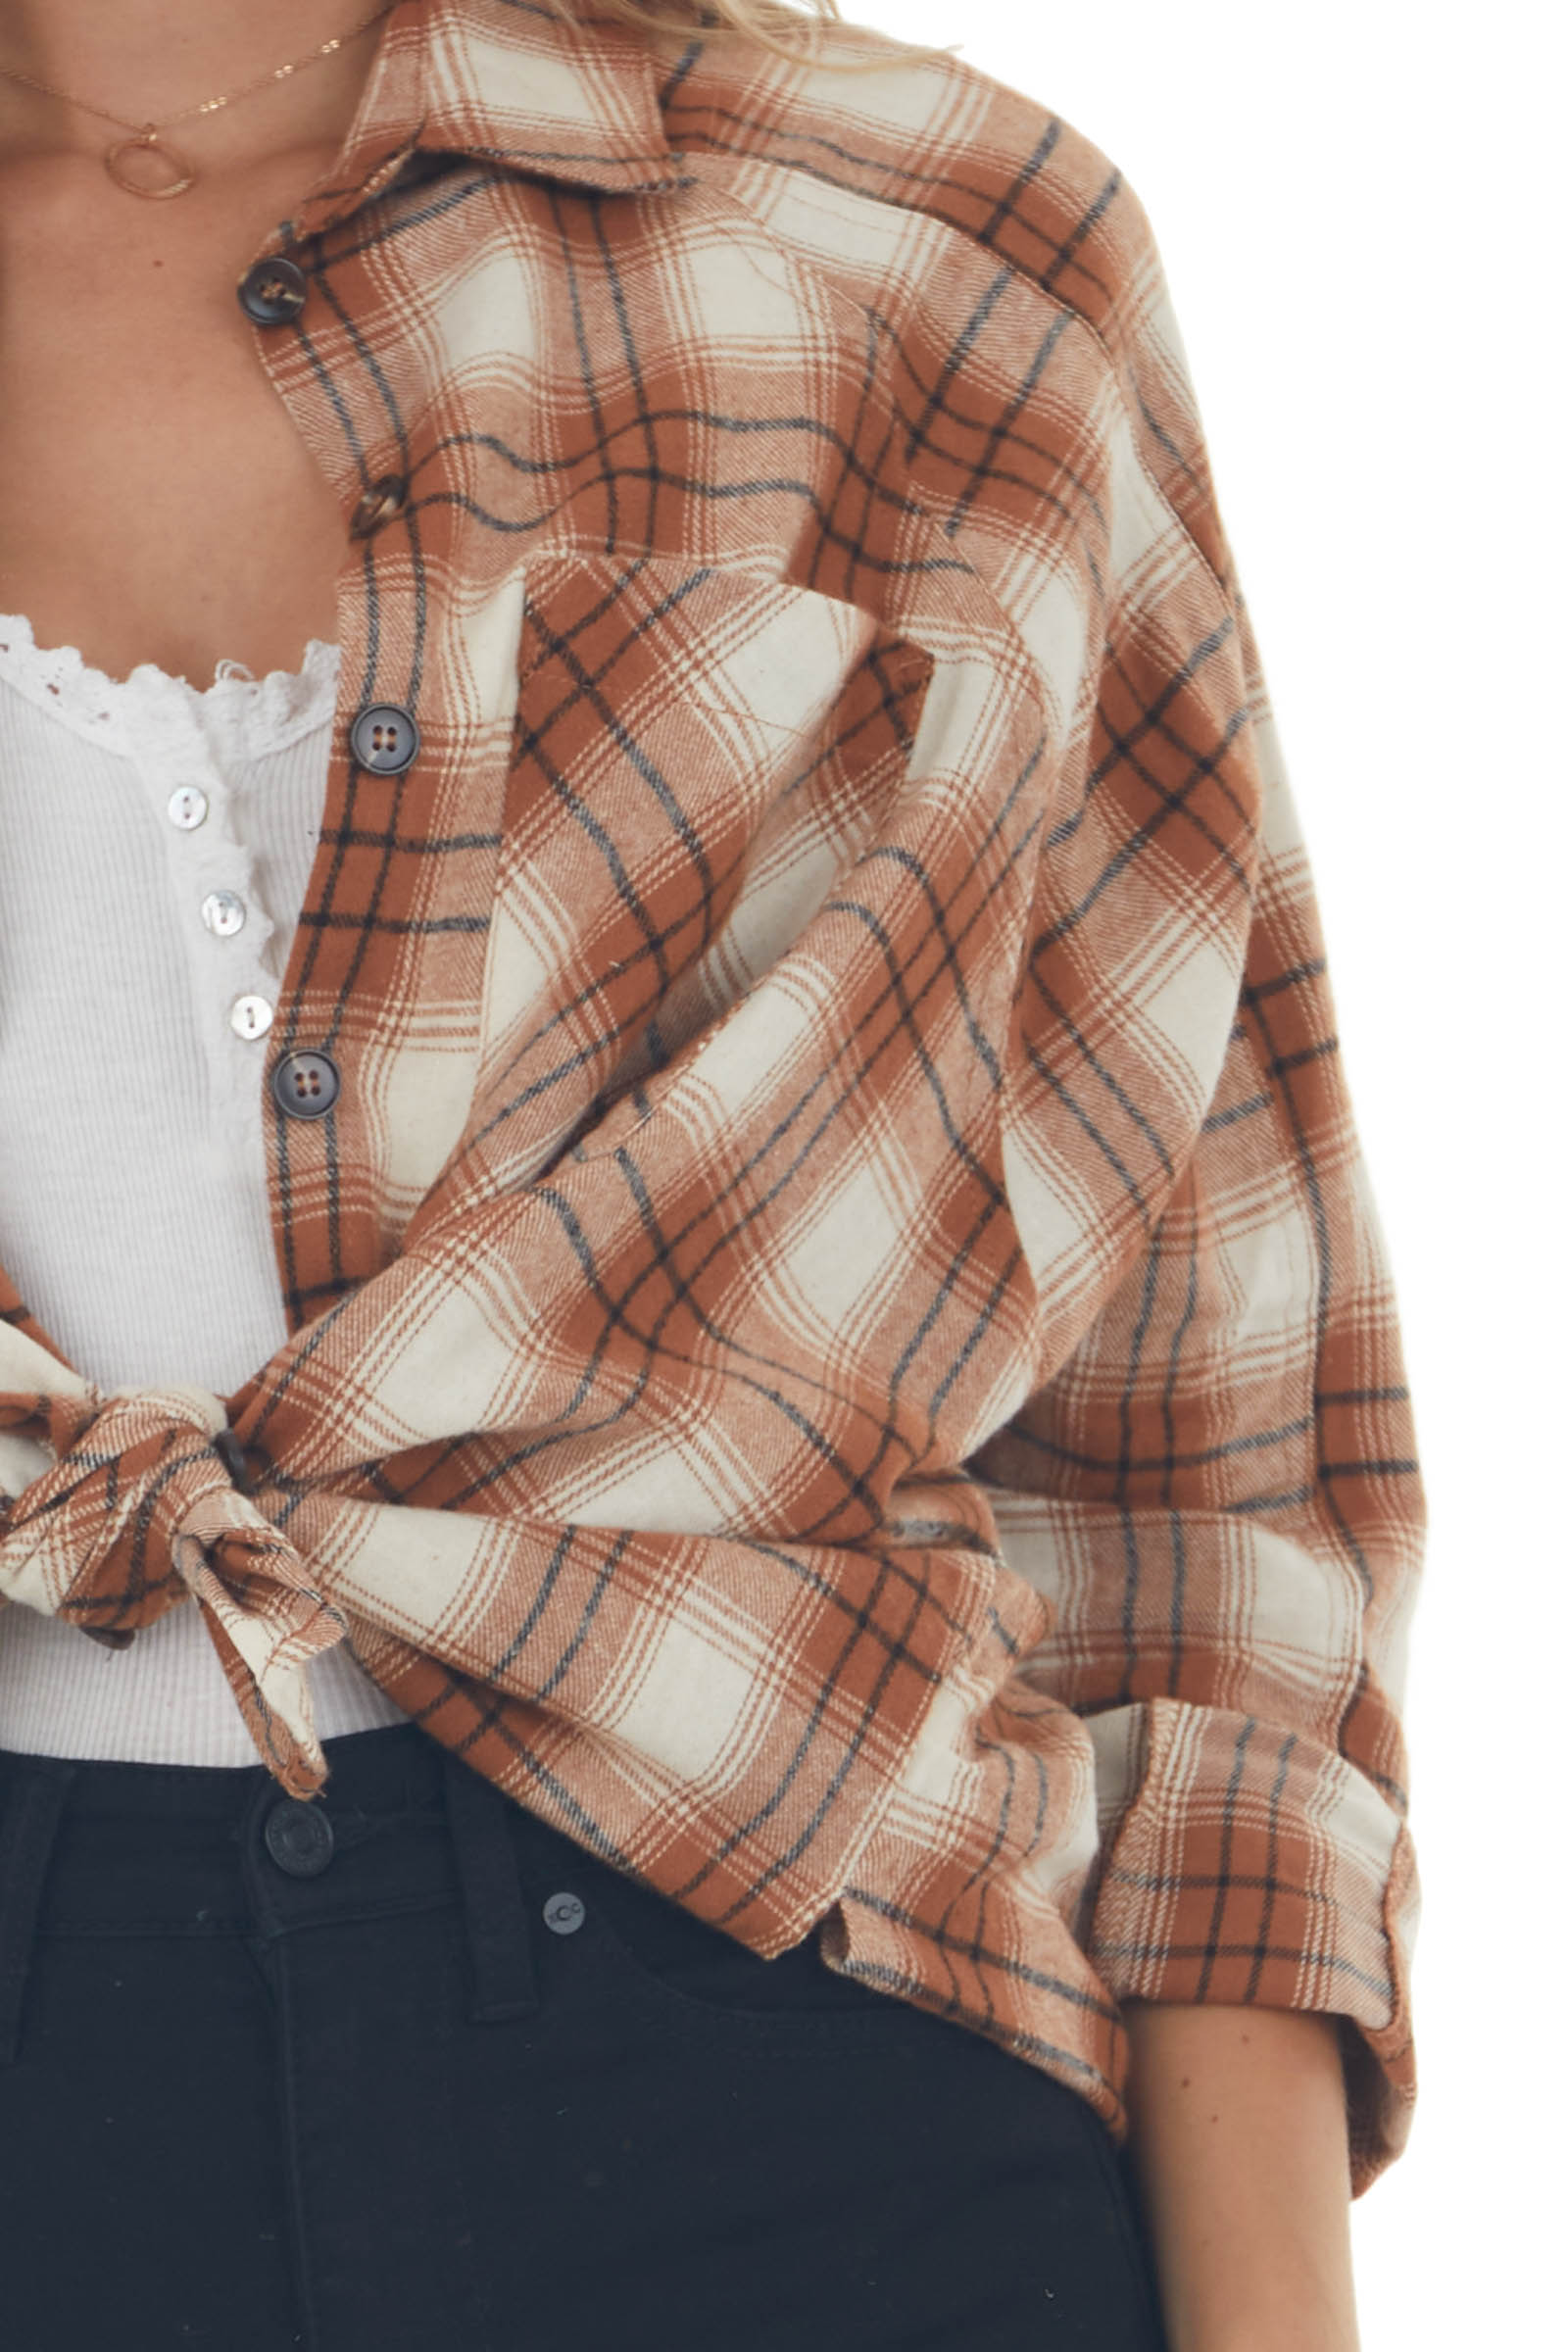 Cognac Plaid Woven Flannel With Chest Pocket